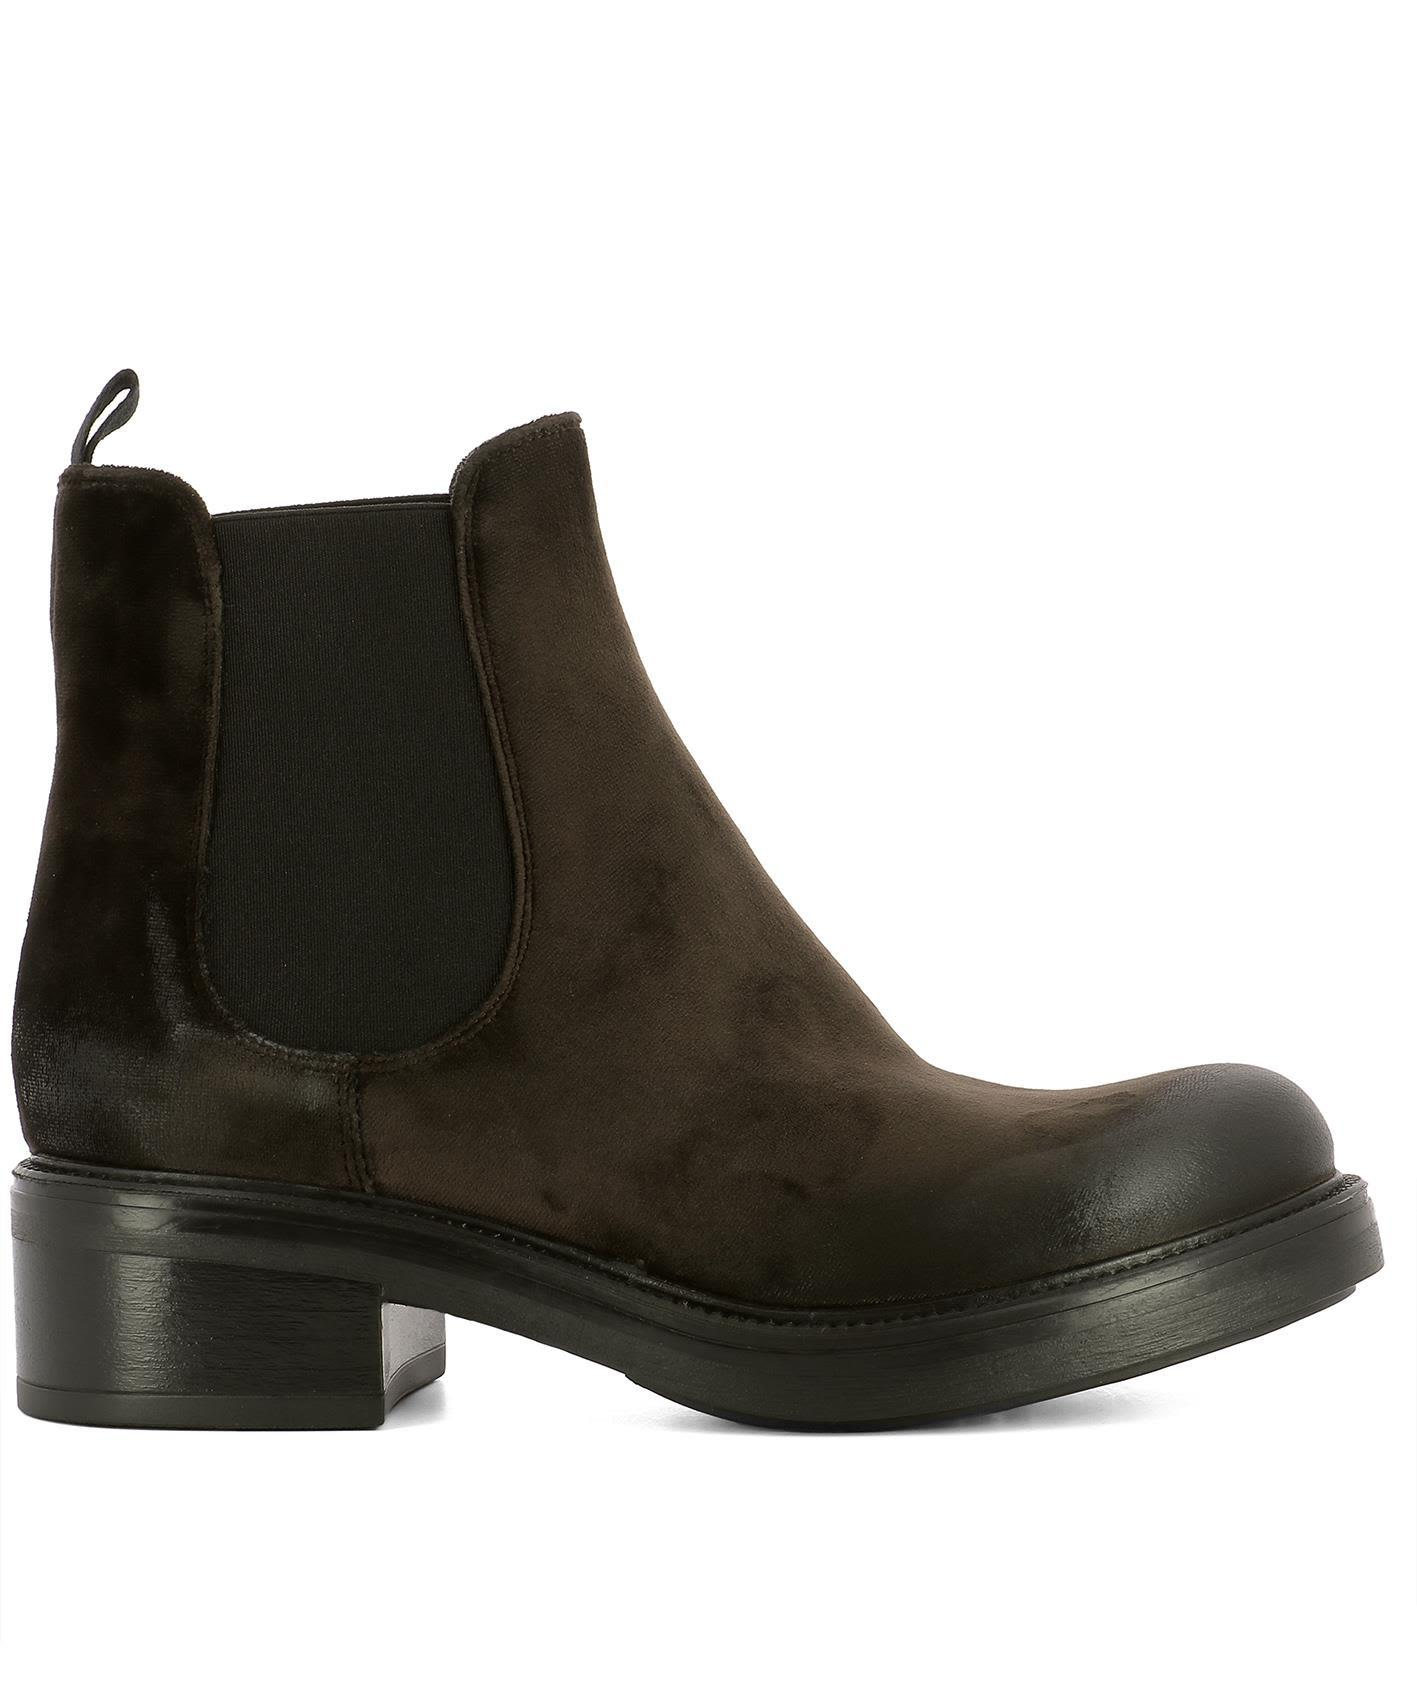 Strategia Brown Suede Ankle Boots